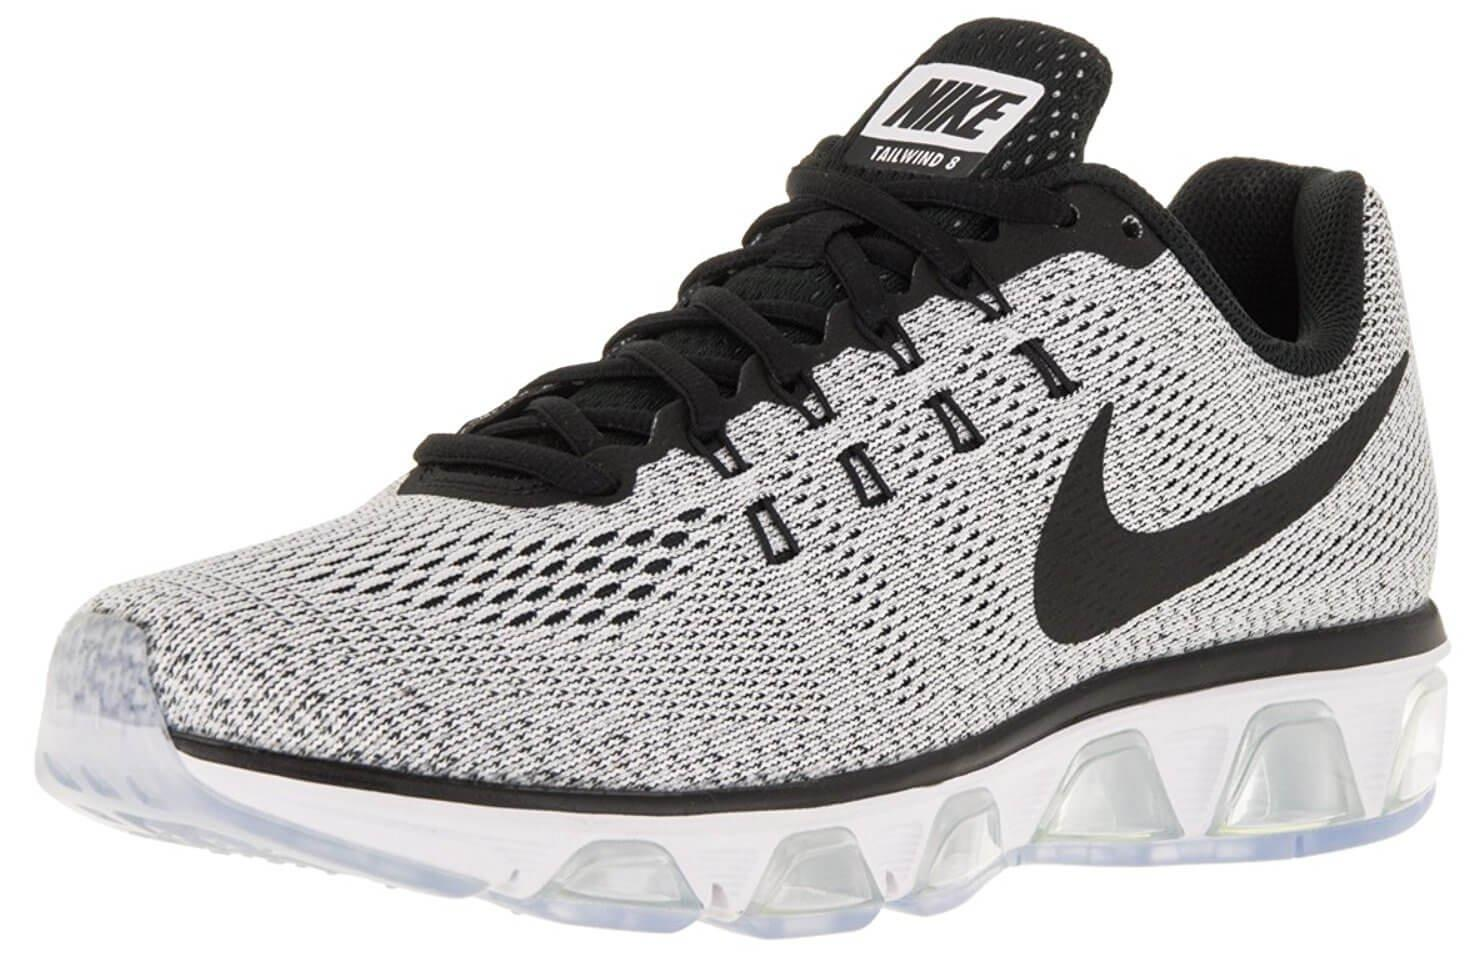 42cf7fb8045 Nike Air Max Tailwind 8 - To Buy or Not in May 2019